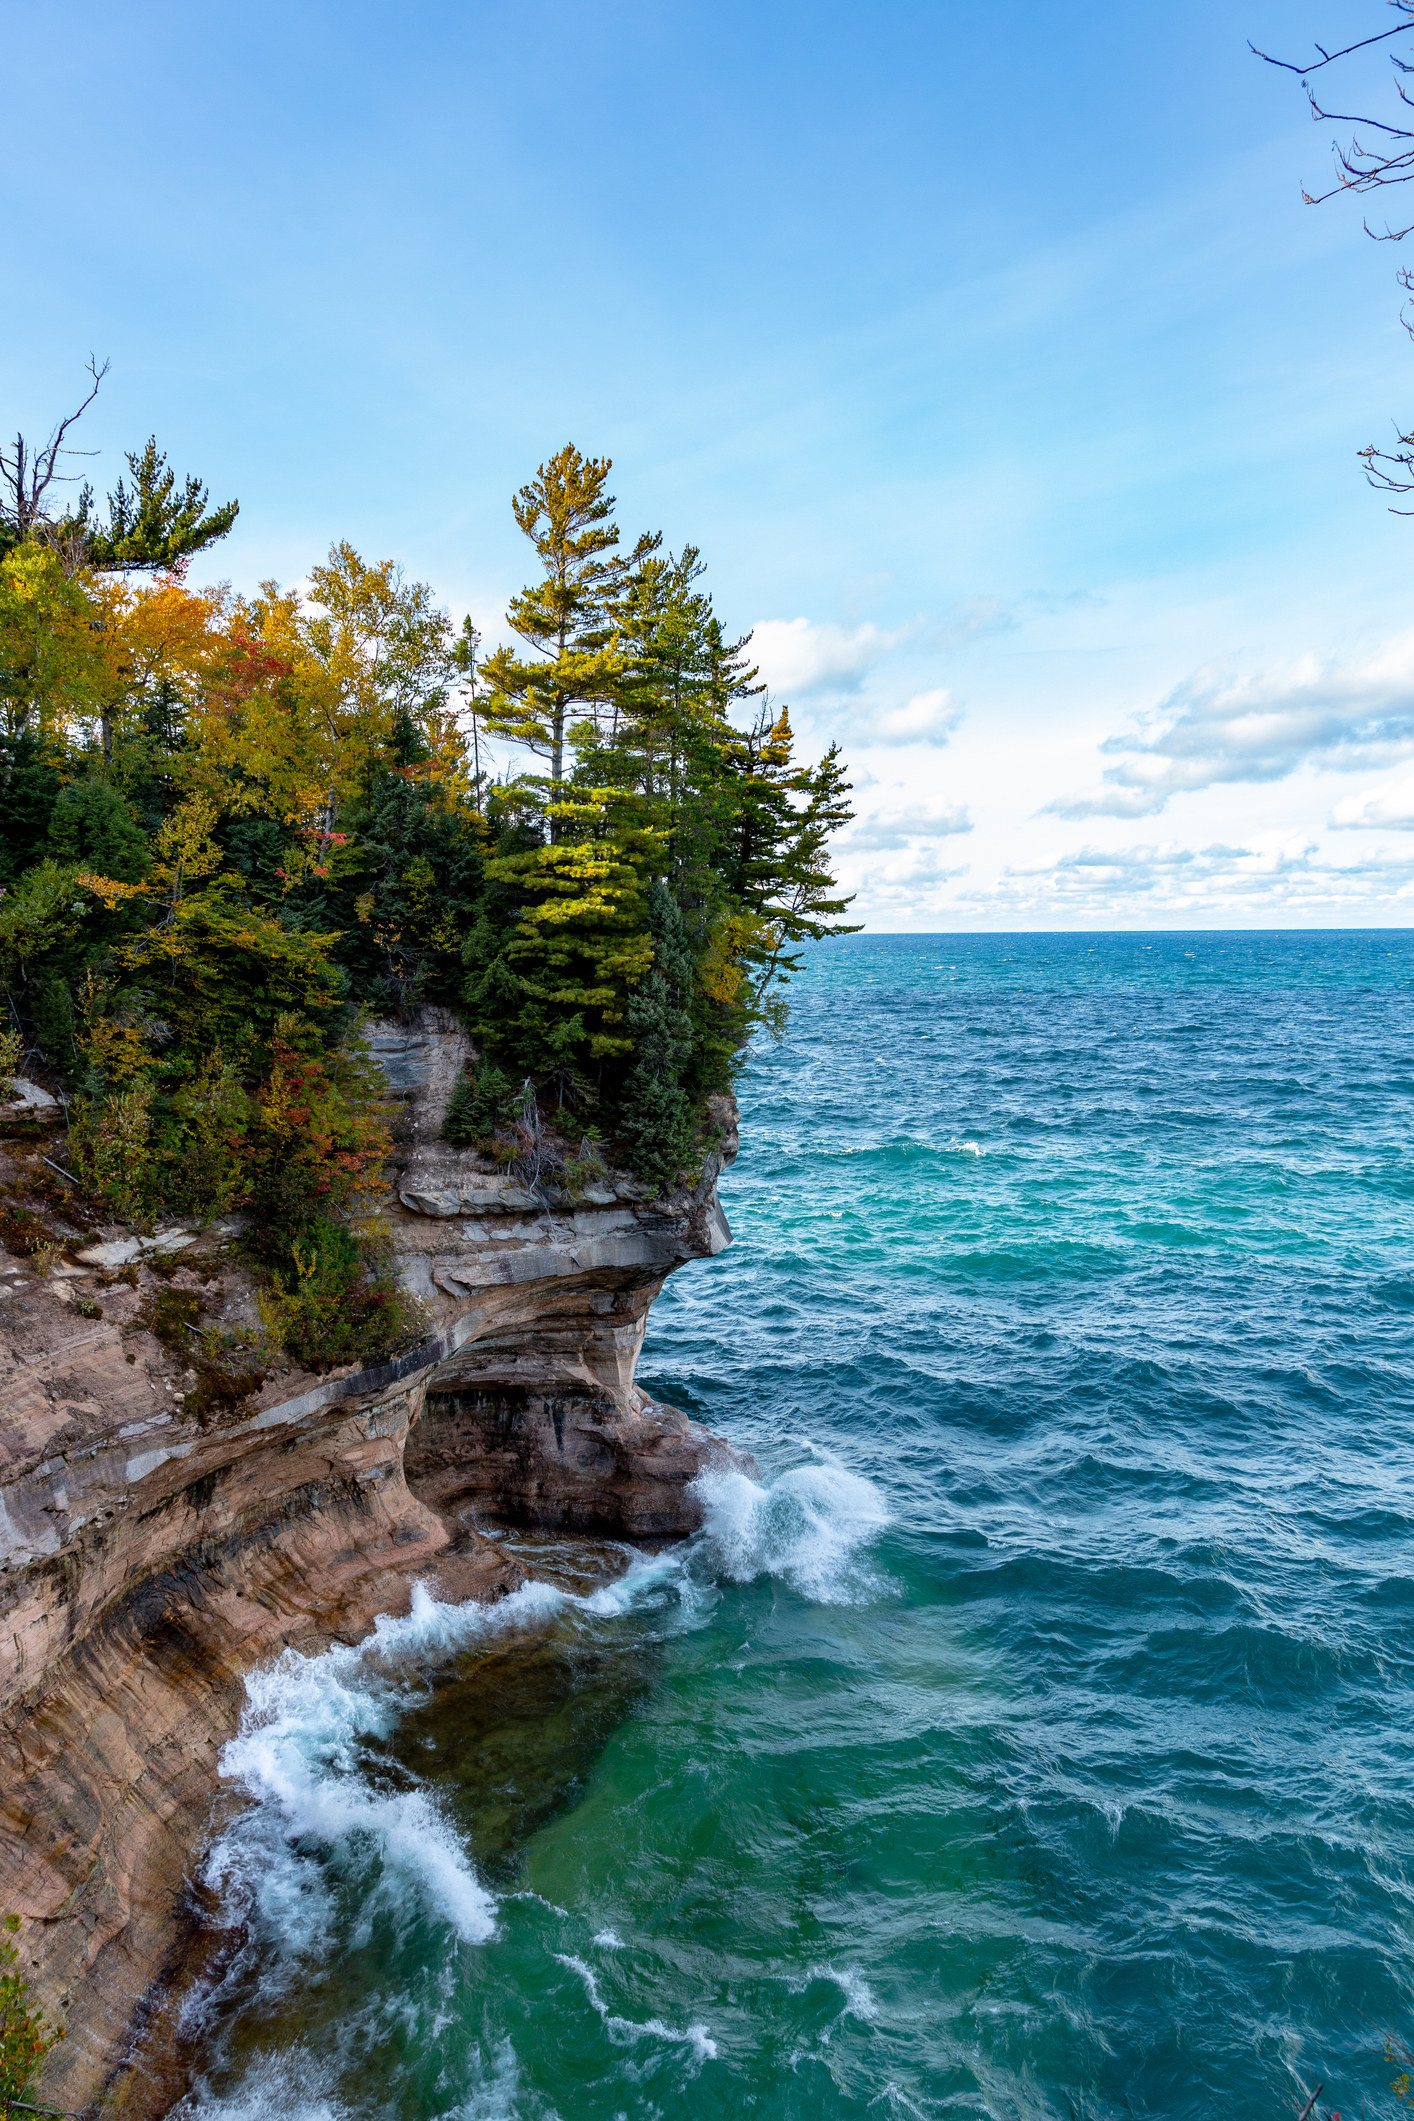 Cumulus clouds dot the horizon as Lake Superior's waves crash against a cliff face at Pictured Rocks National Lakeshore